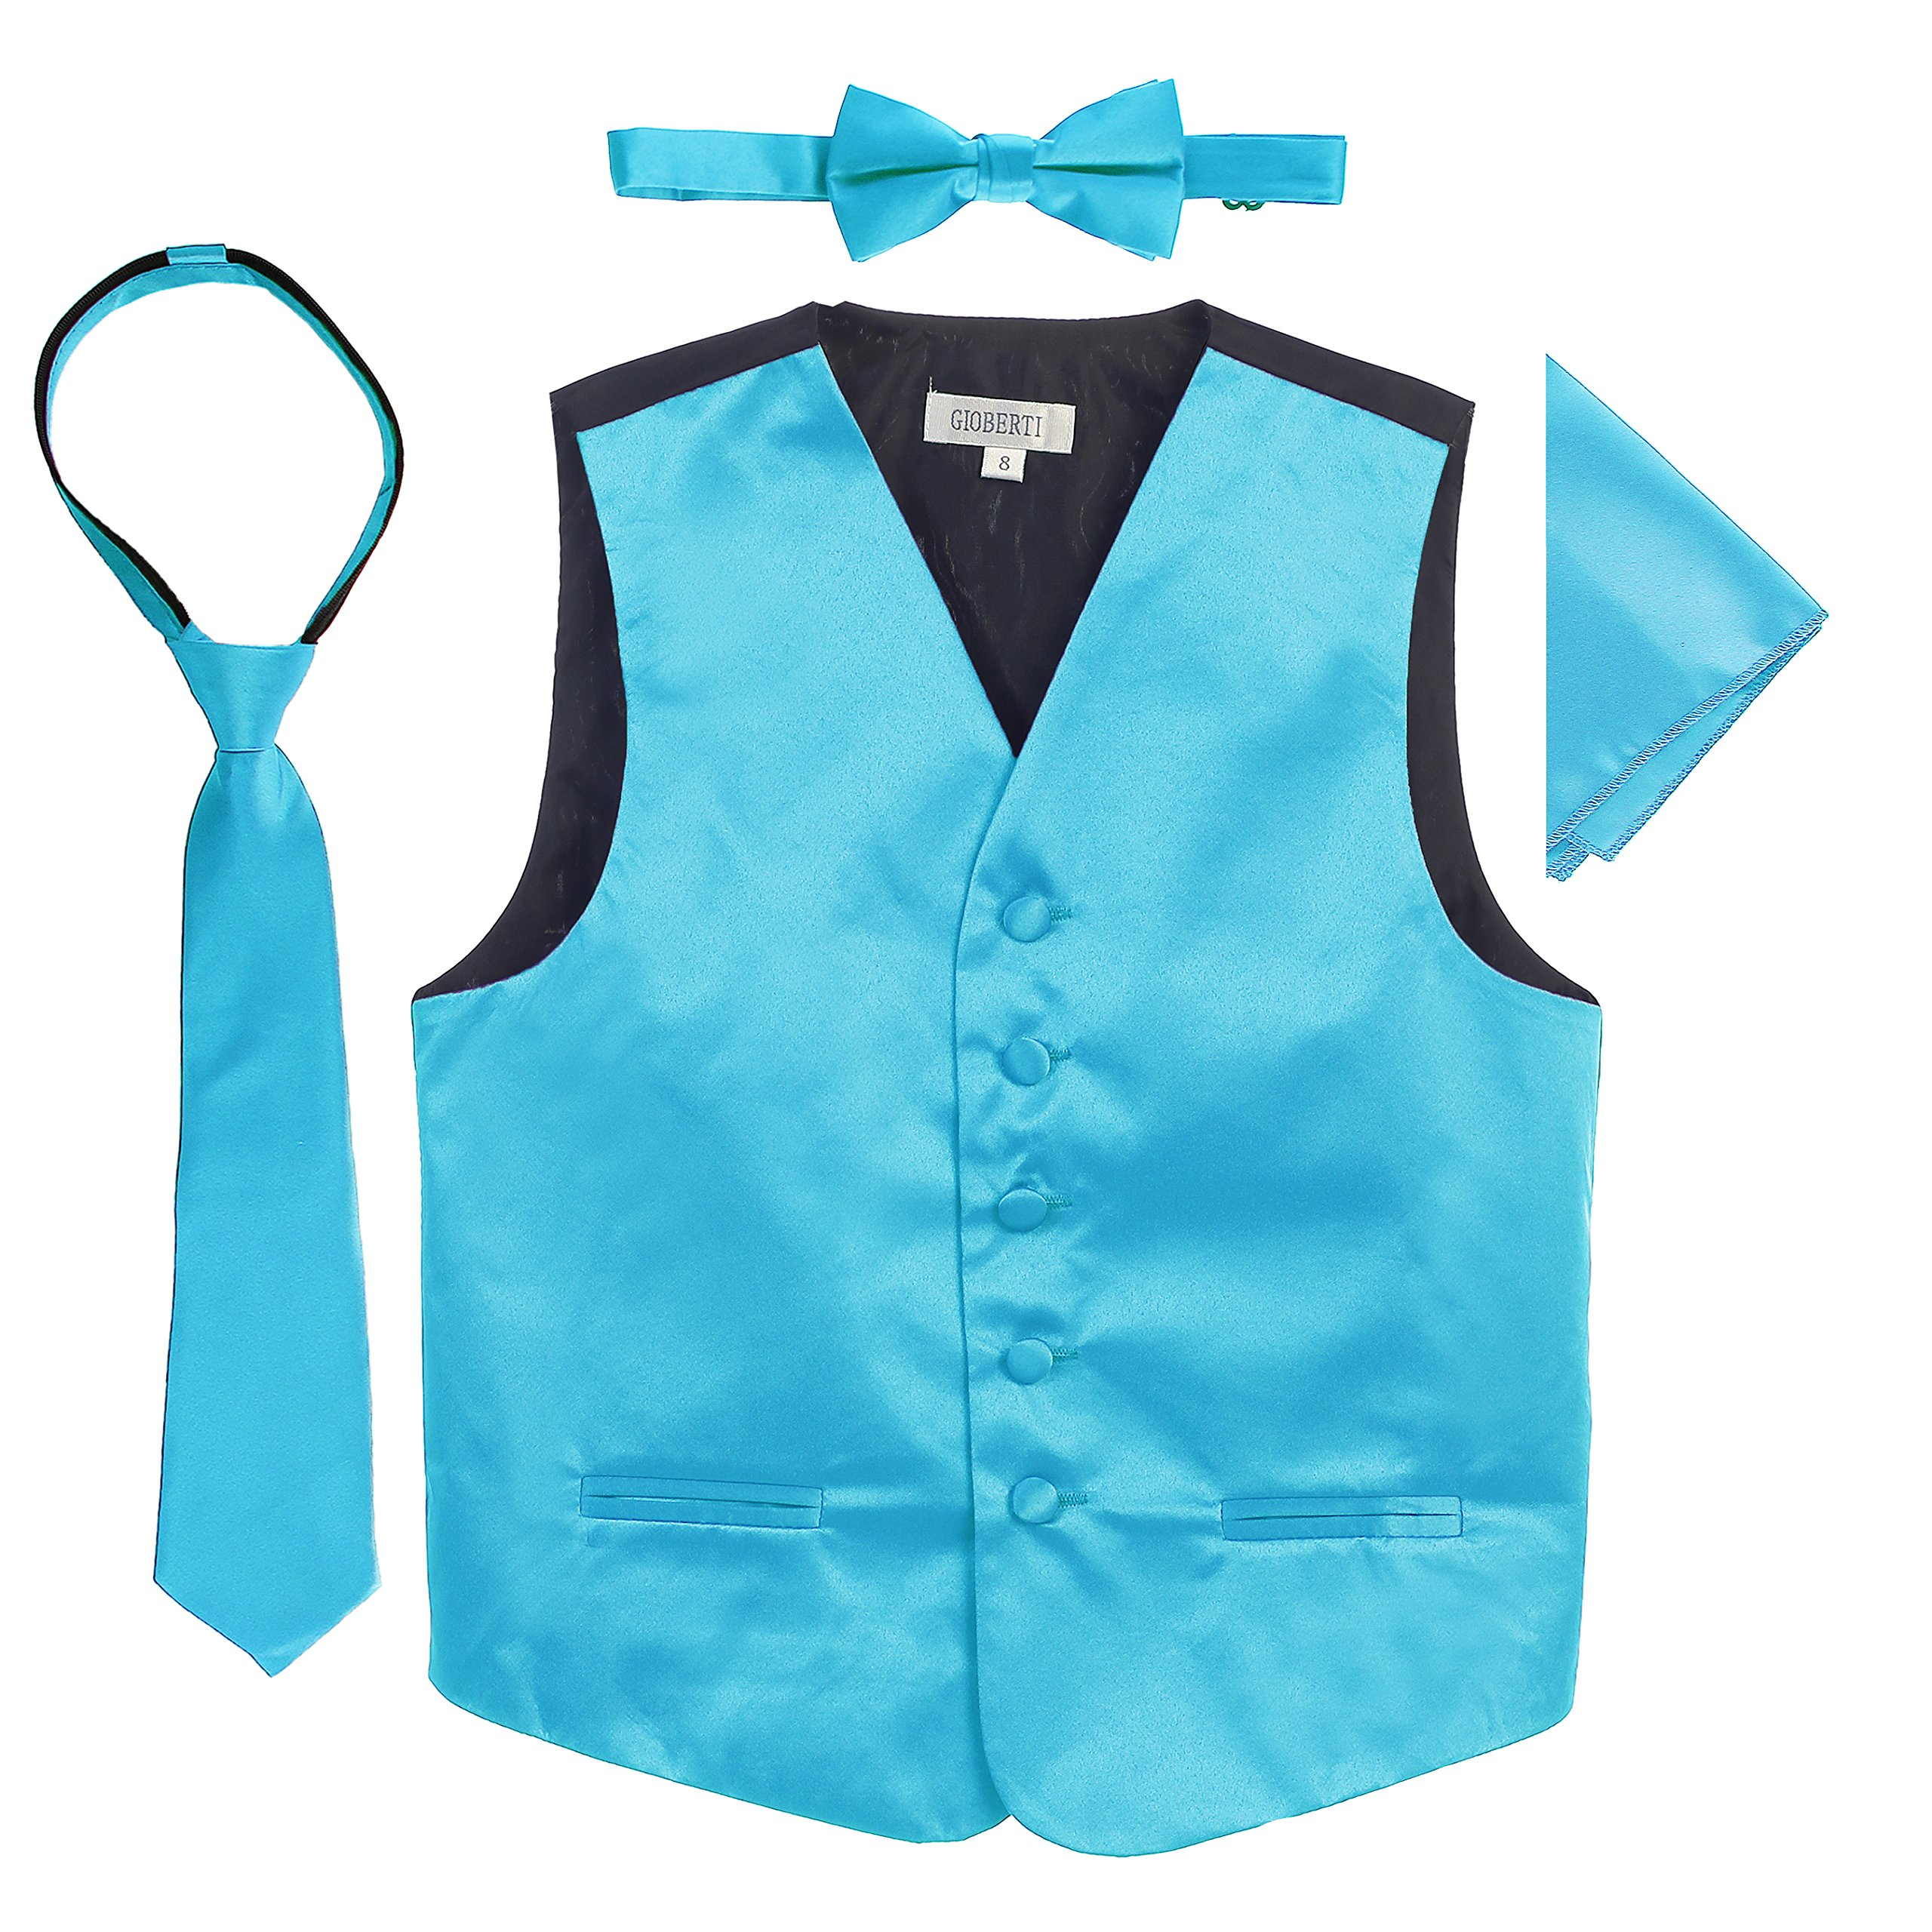 Gioberti Boys 4pc Satin Formal Vest Set, Turquoise, 4-5